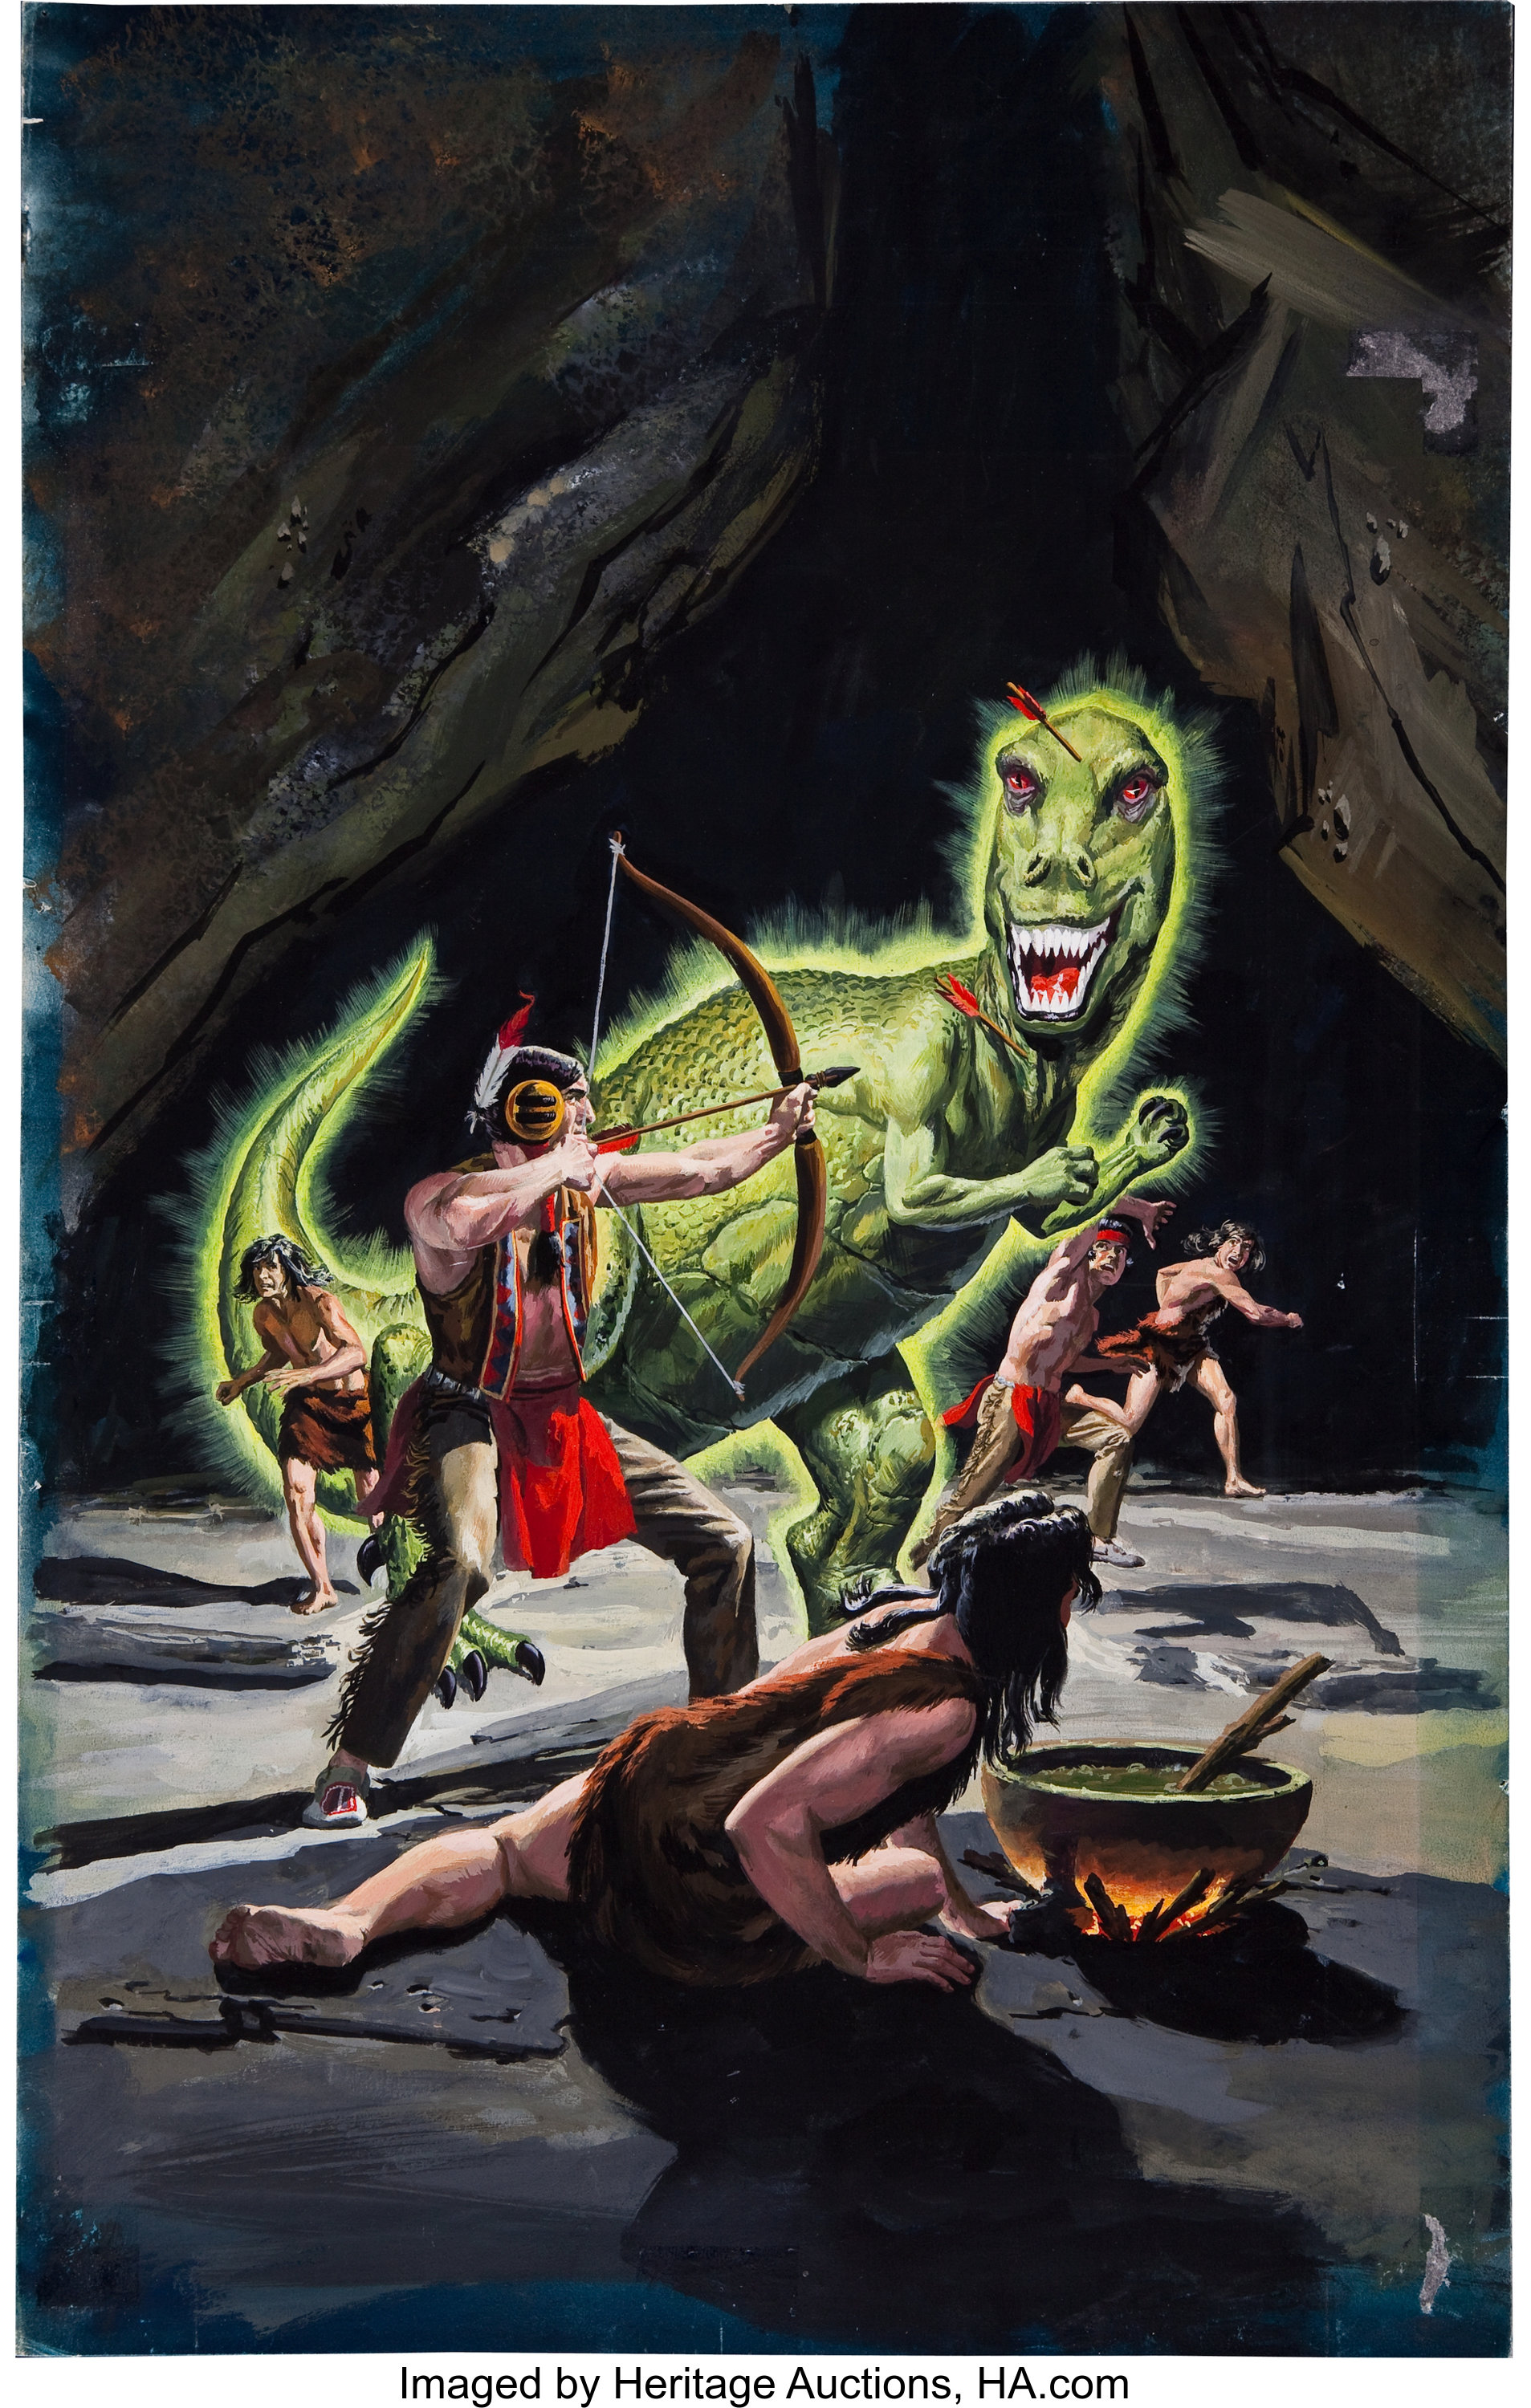 George Wilson Turok Son Of Stone 41 Painted Cover Original Art Lot 92274 Heritage Auctions